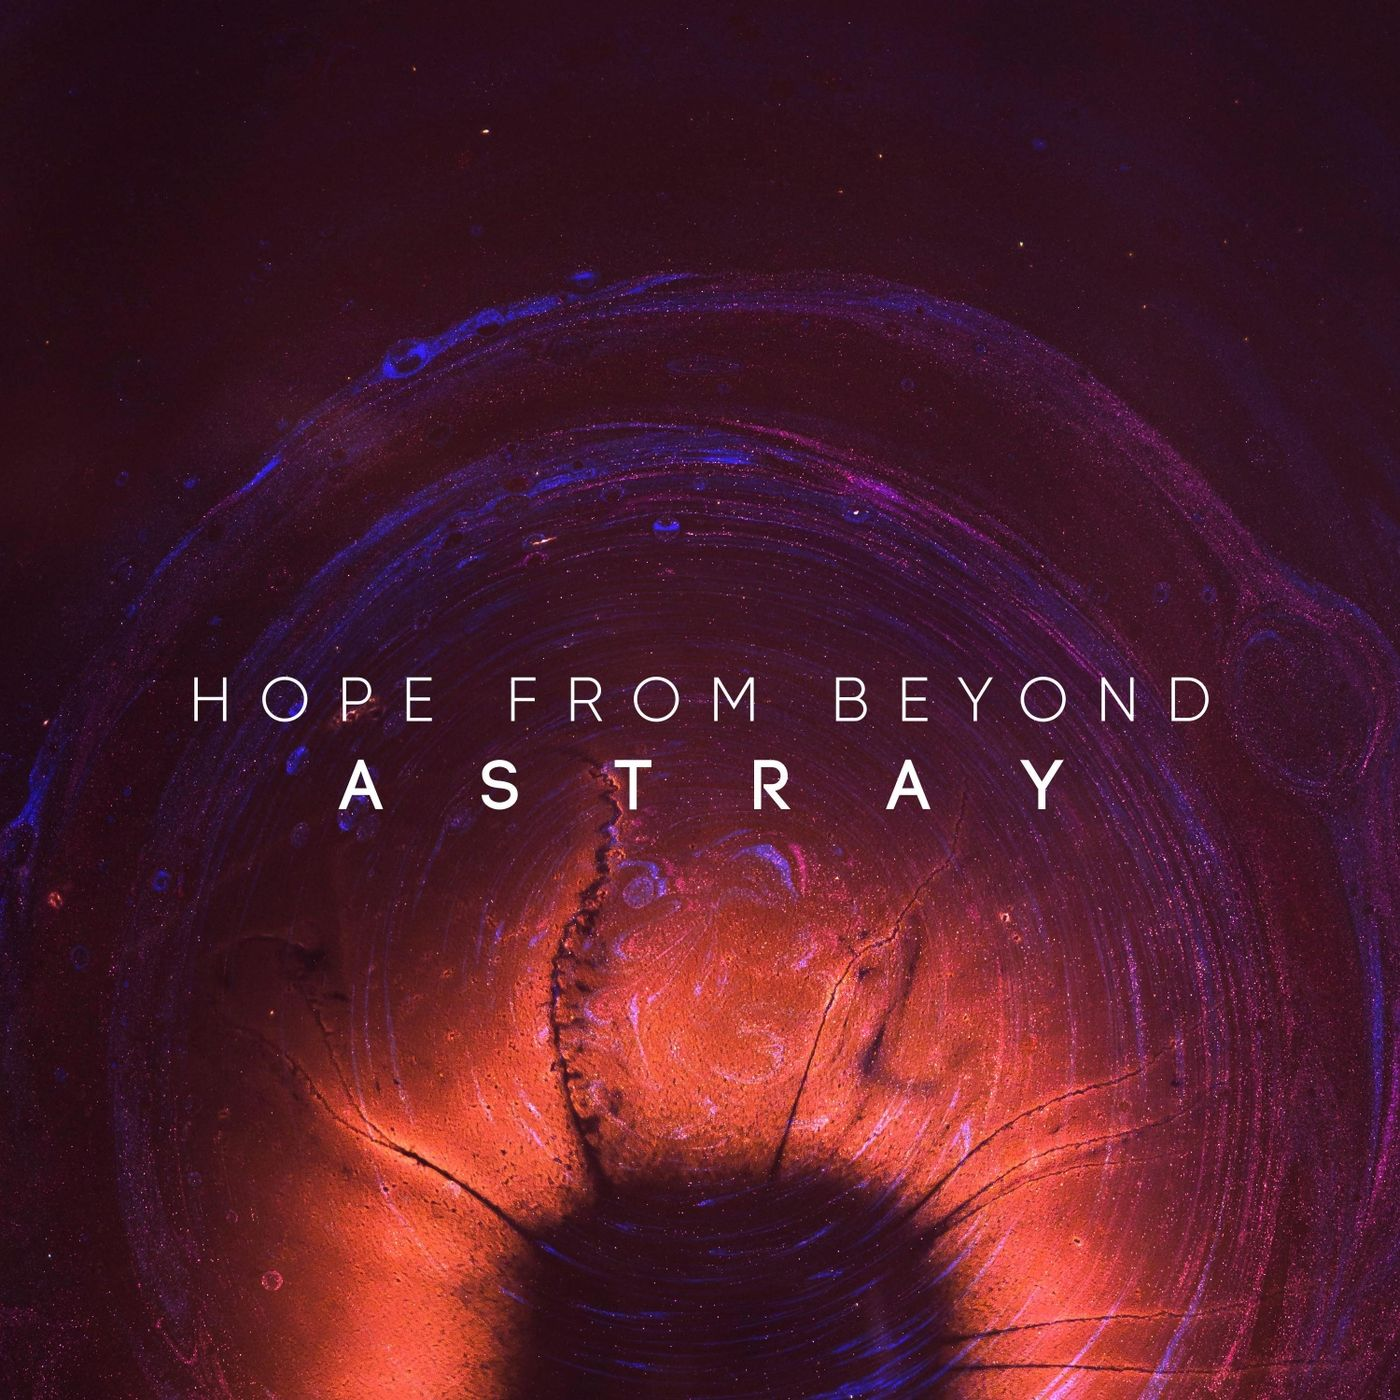 Hope from Beyond - Astray [single] (2019)